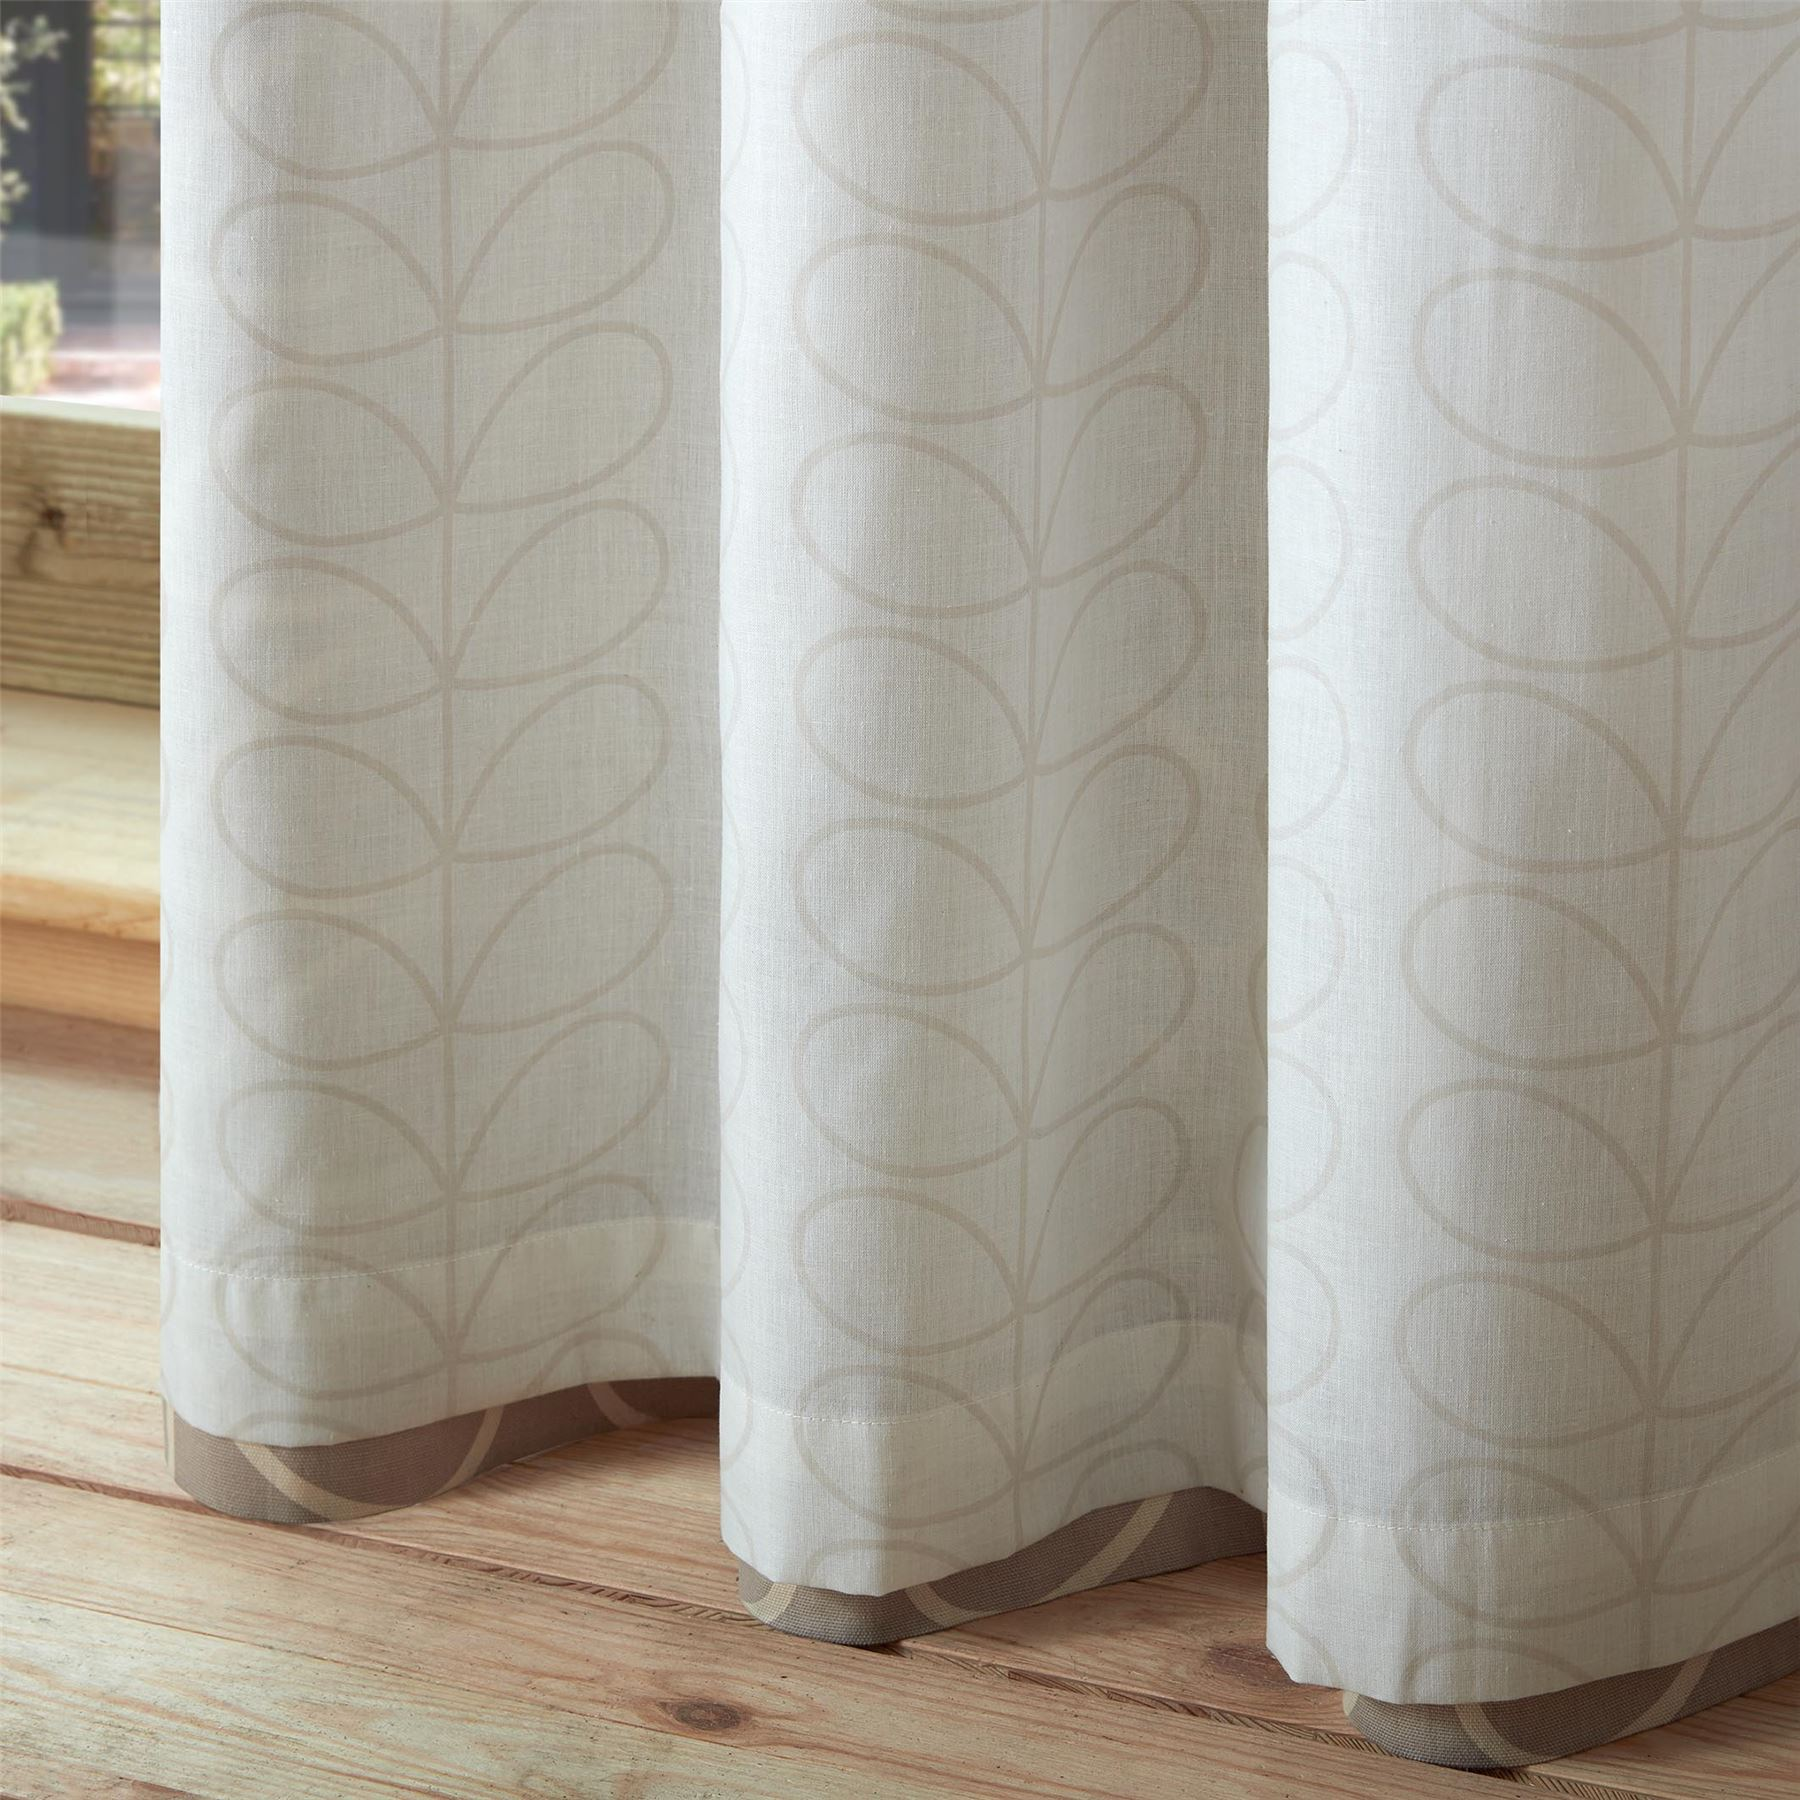 ORLA KIELY LINEAR LEAF STEM LATTE BEIGE CREAM LINED RING TOP CURTAINS *8 SIZES*